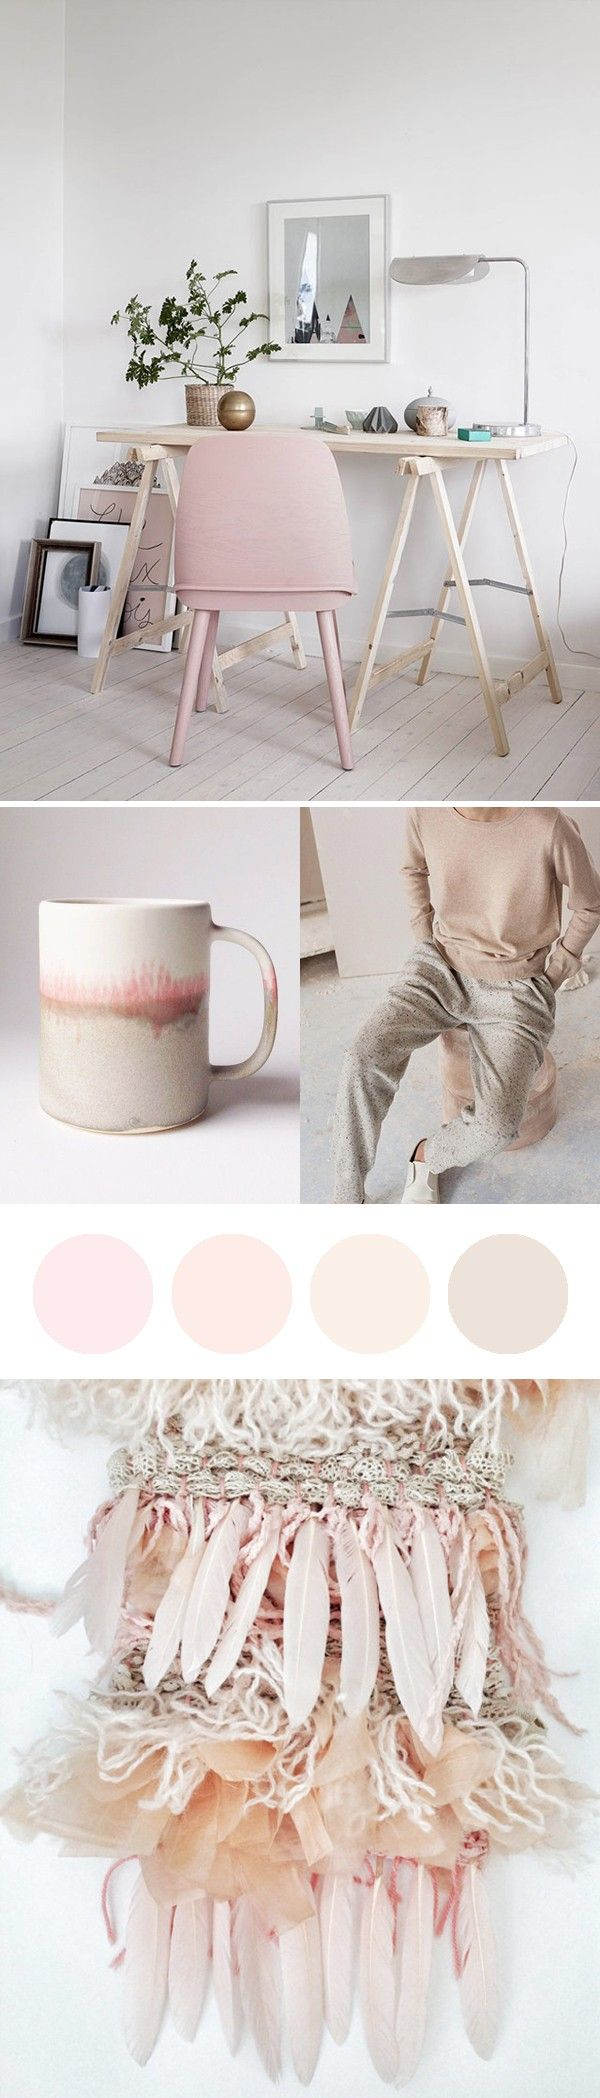 Pantone Colour of the Year 2016 - inspiraiton